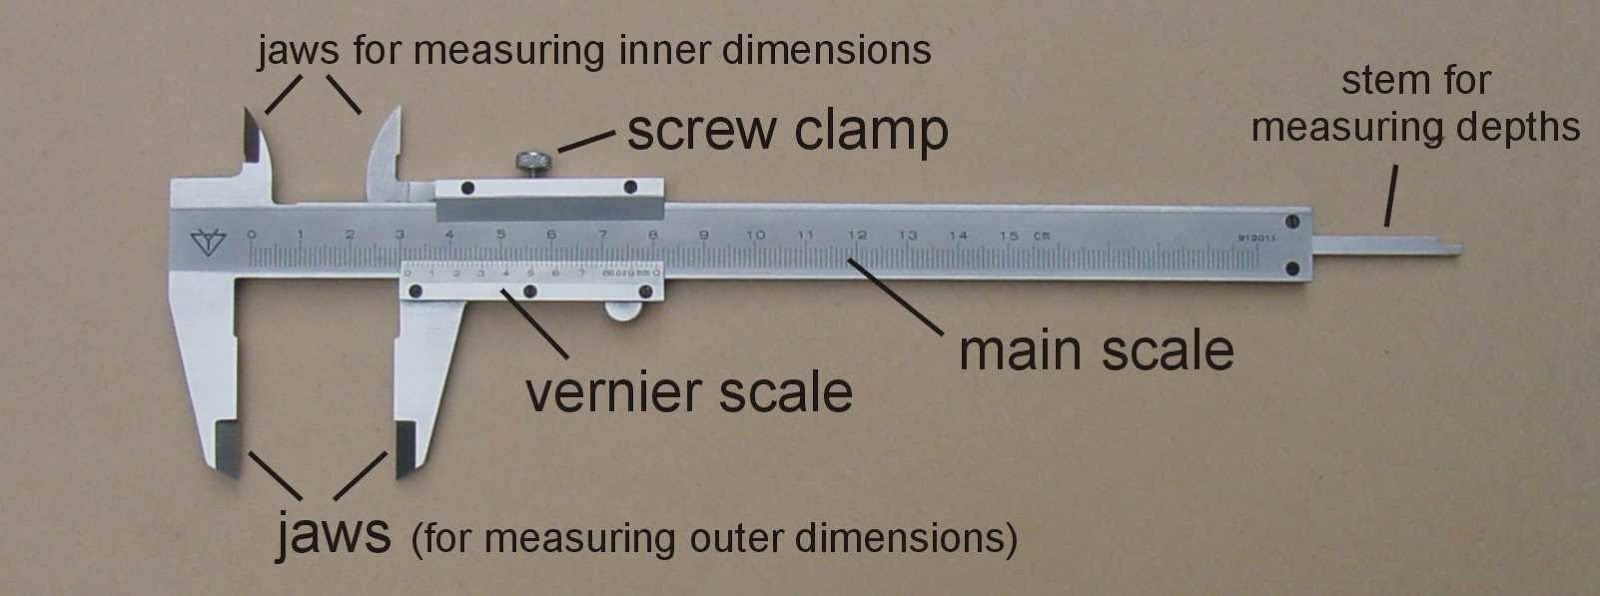 How To Read Vernier Calipers